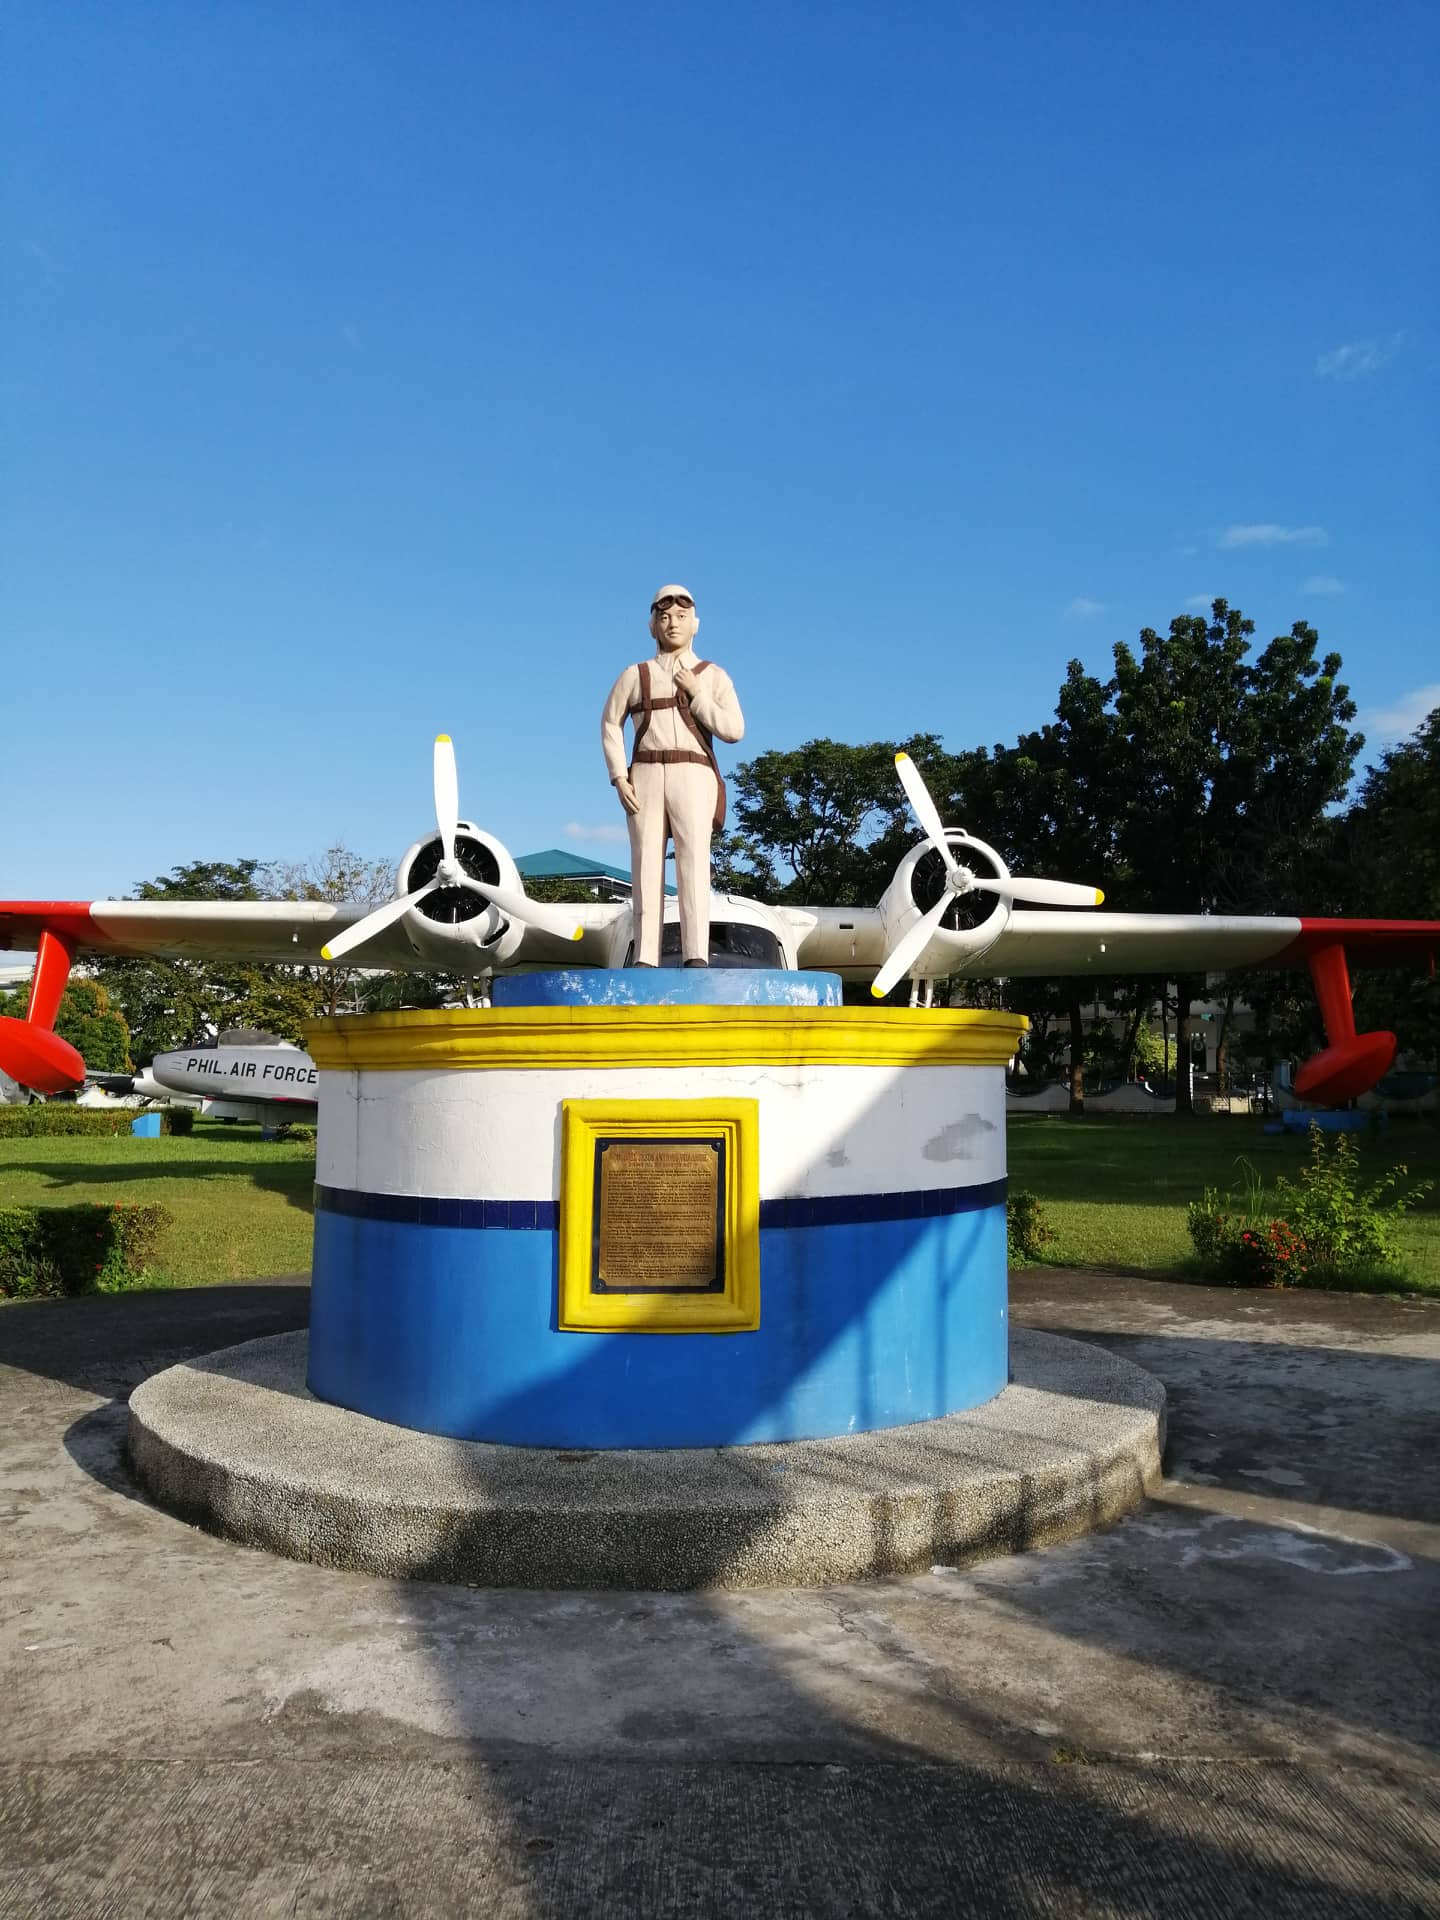 A monument dedicated to Jesus A. Villamor, a Filipino American pilot pioneer who fought the Japanese during World War 2.